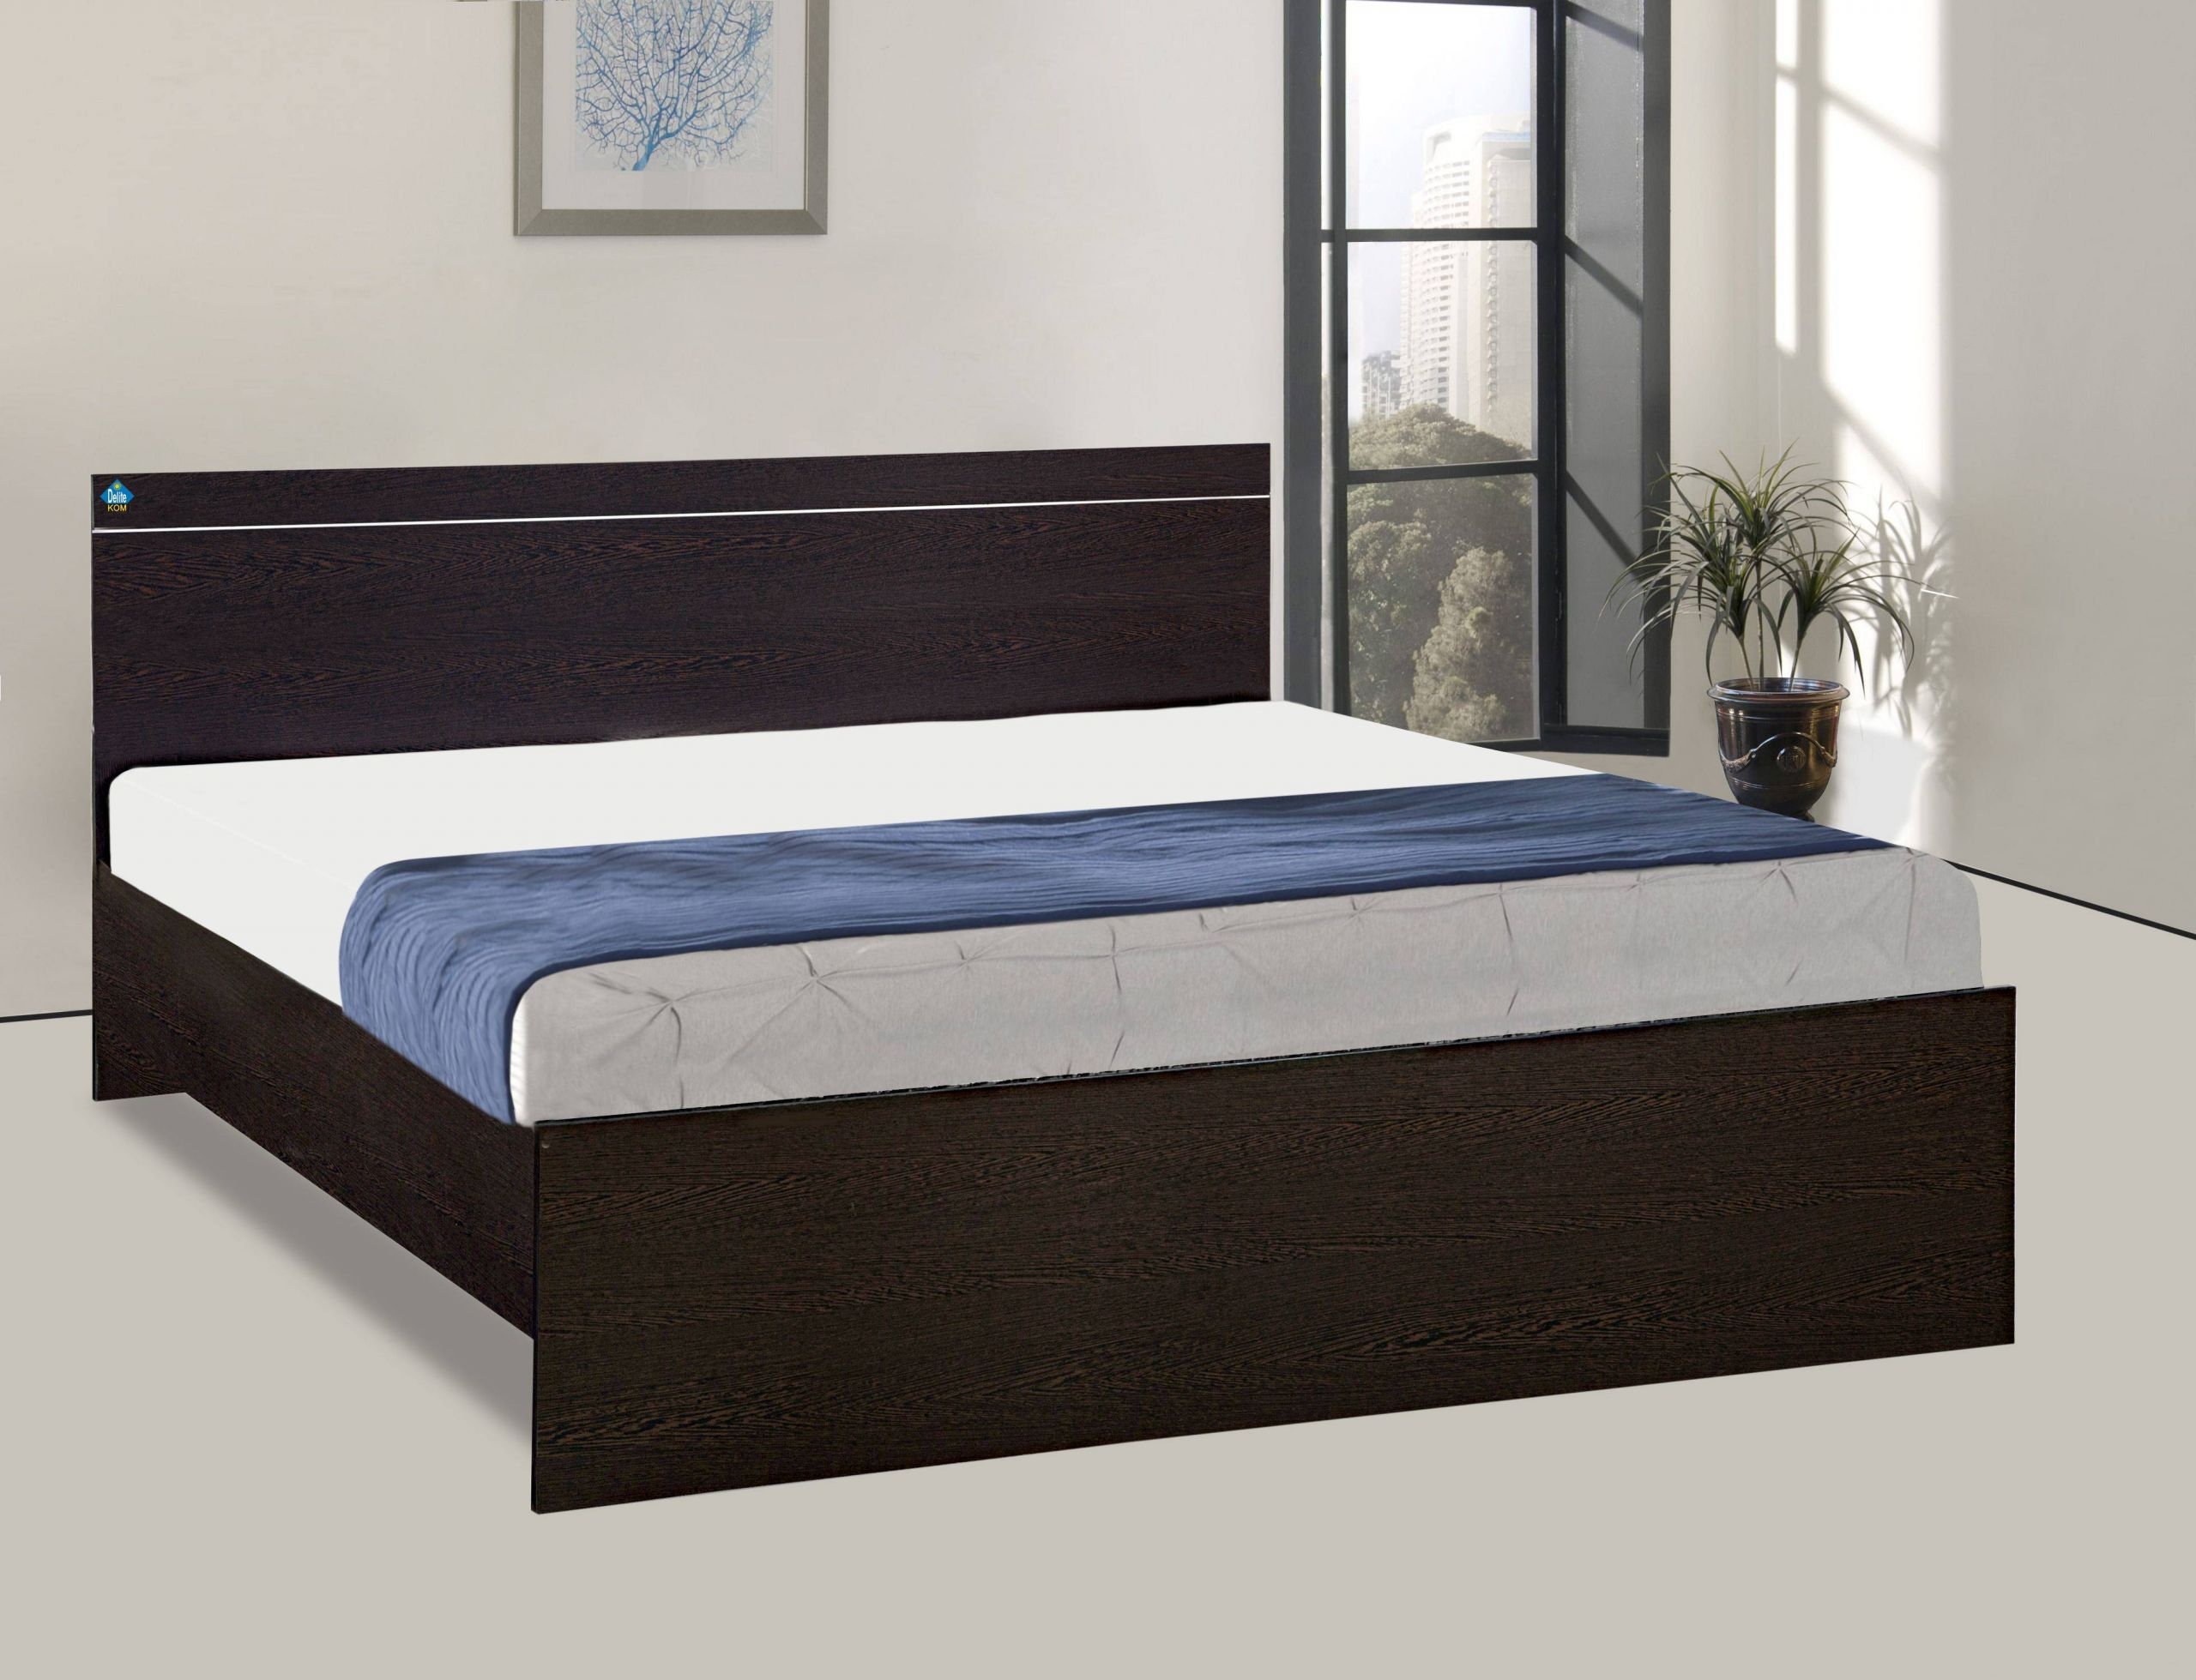 Delite Kom Jazz Queen Bed SDL 1 fe709